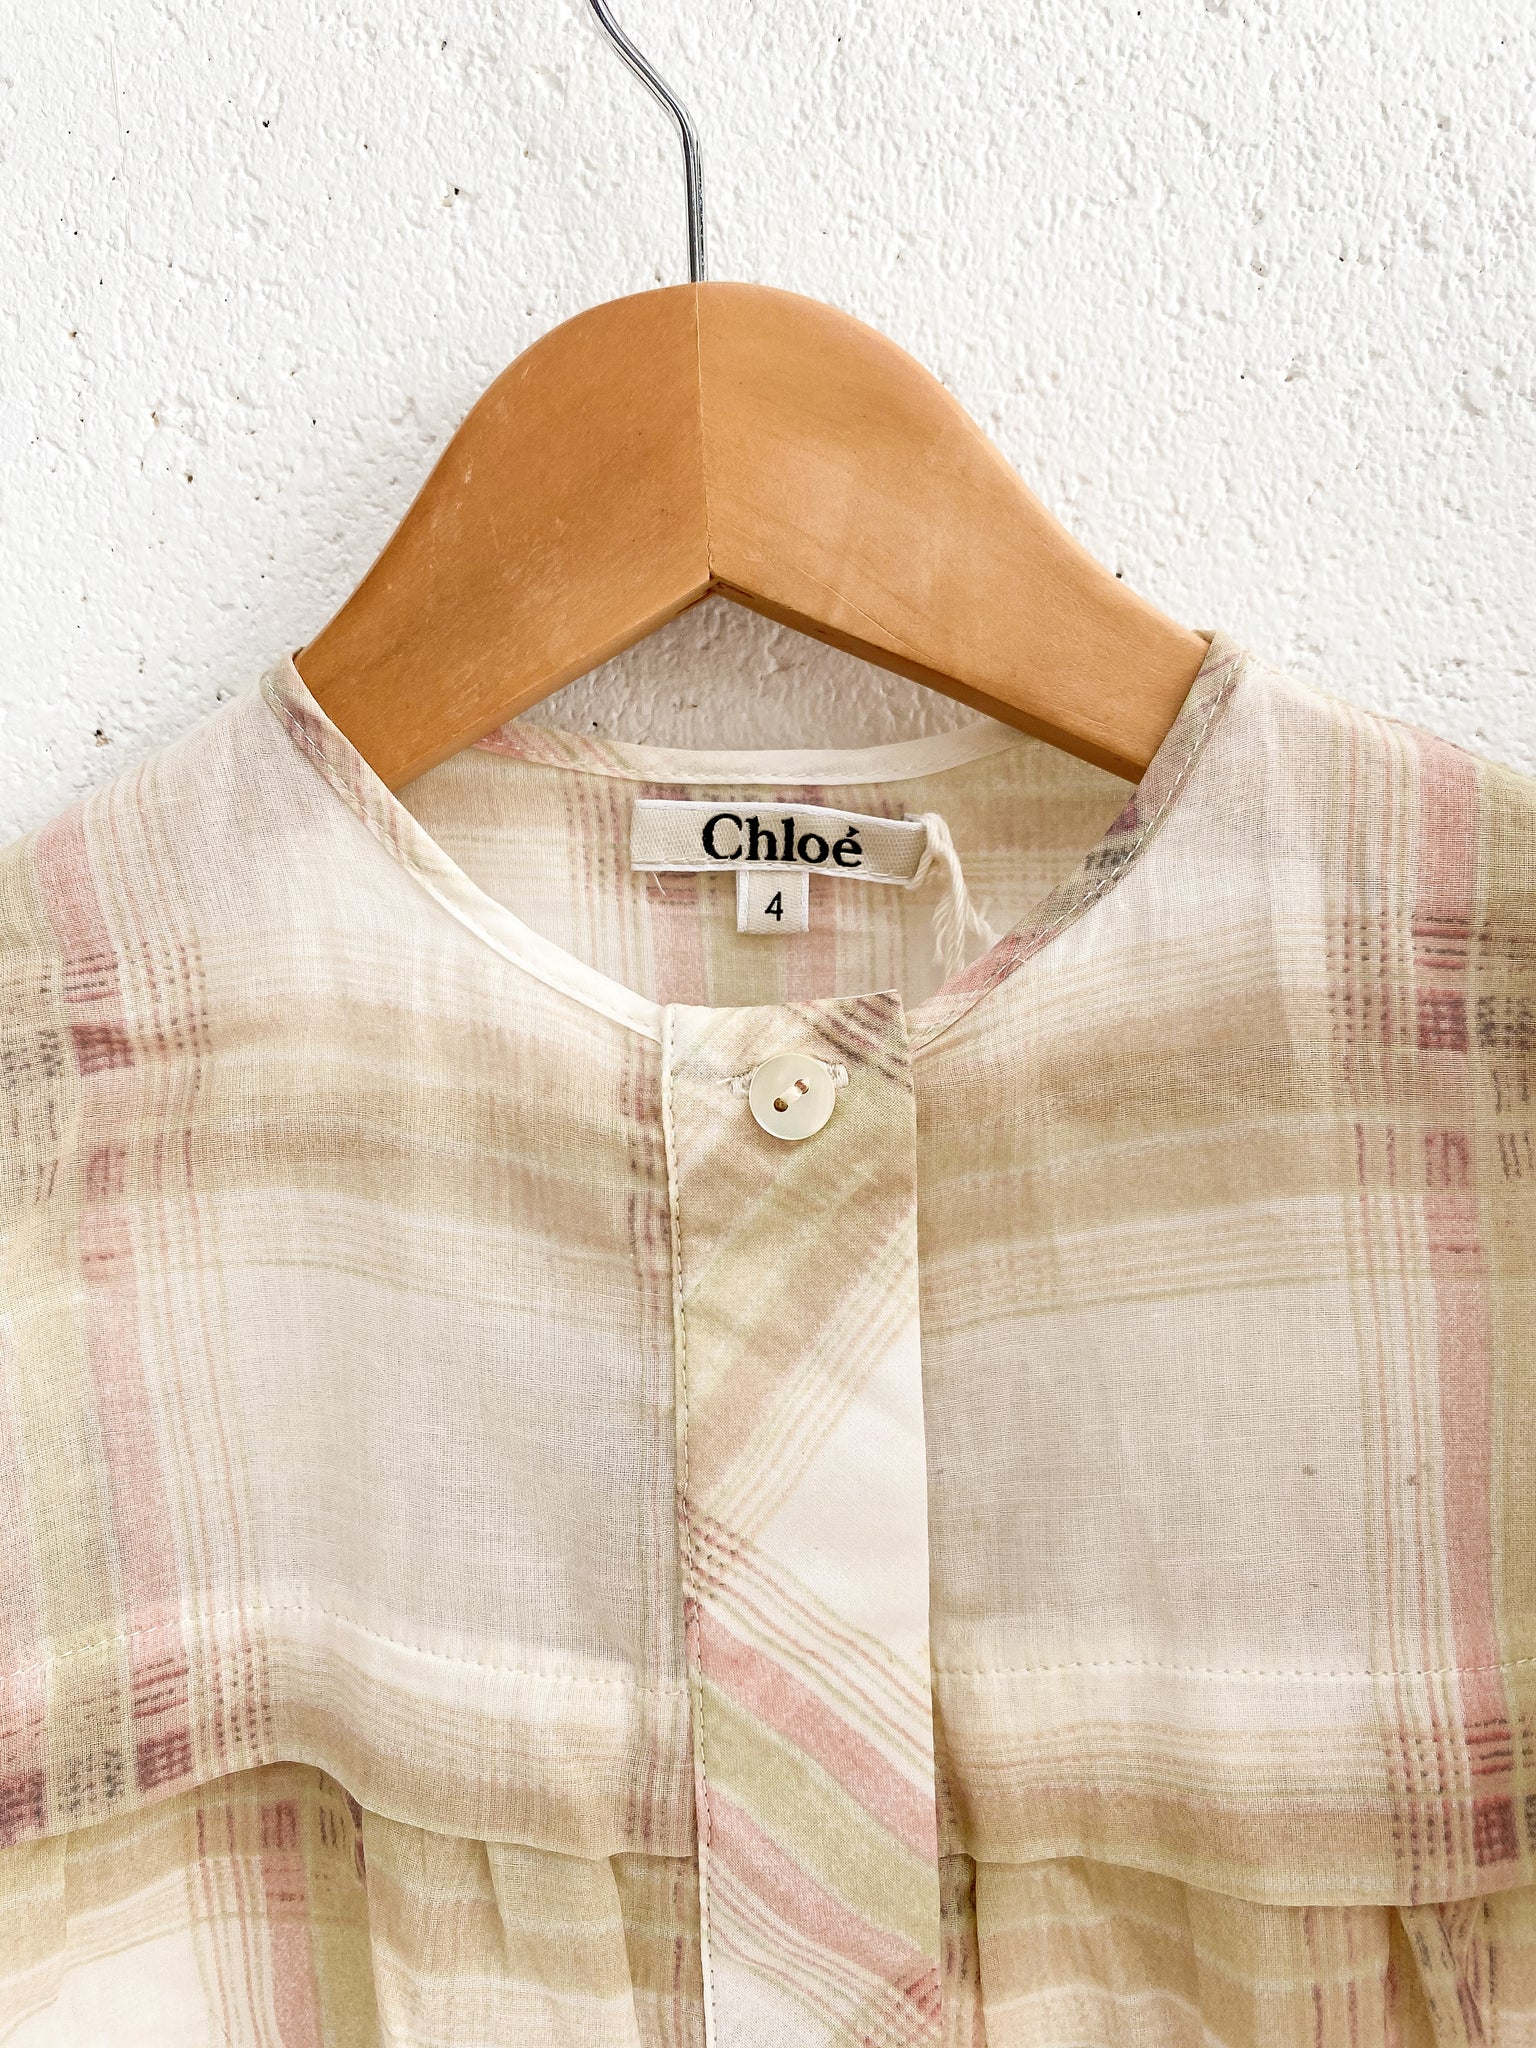 CHLOÈ Kids Brown Plaid Cotton Blouse Size 4-5